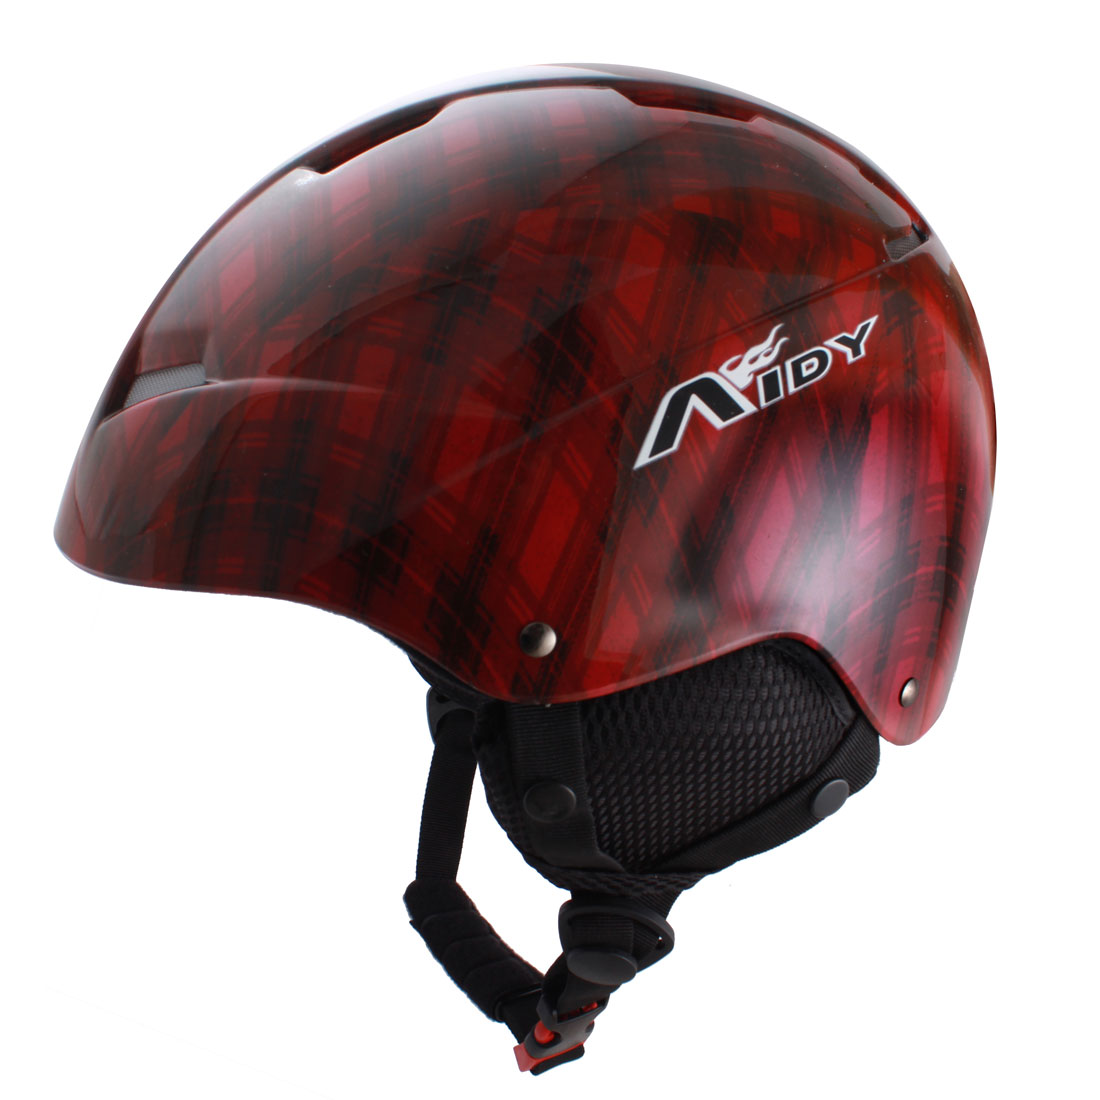 Adjustable Release Buckle Chin Strap Foam Lining Skiing Sports Helmet Red Black by